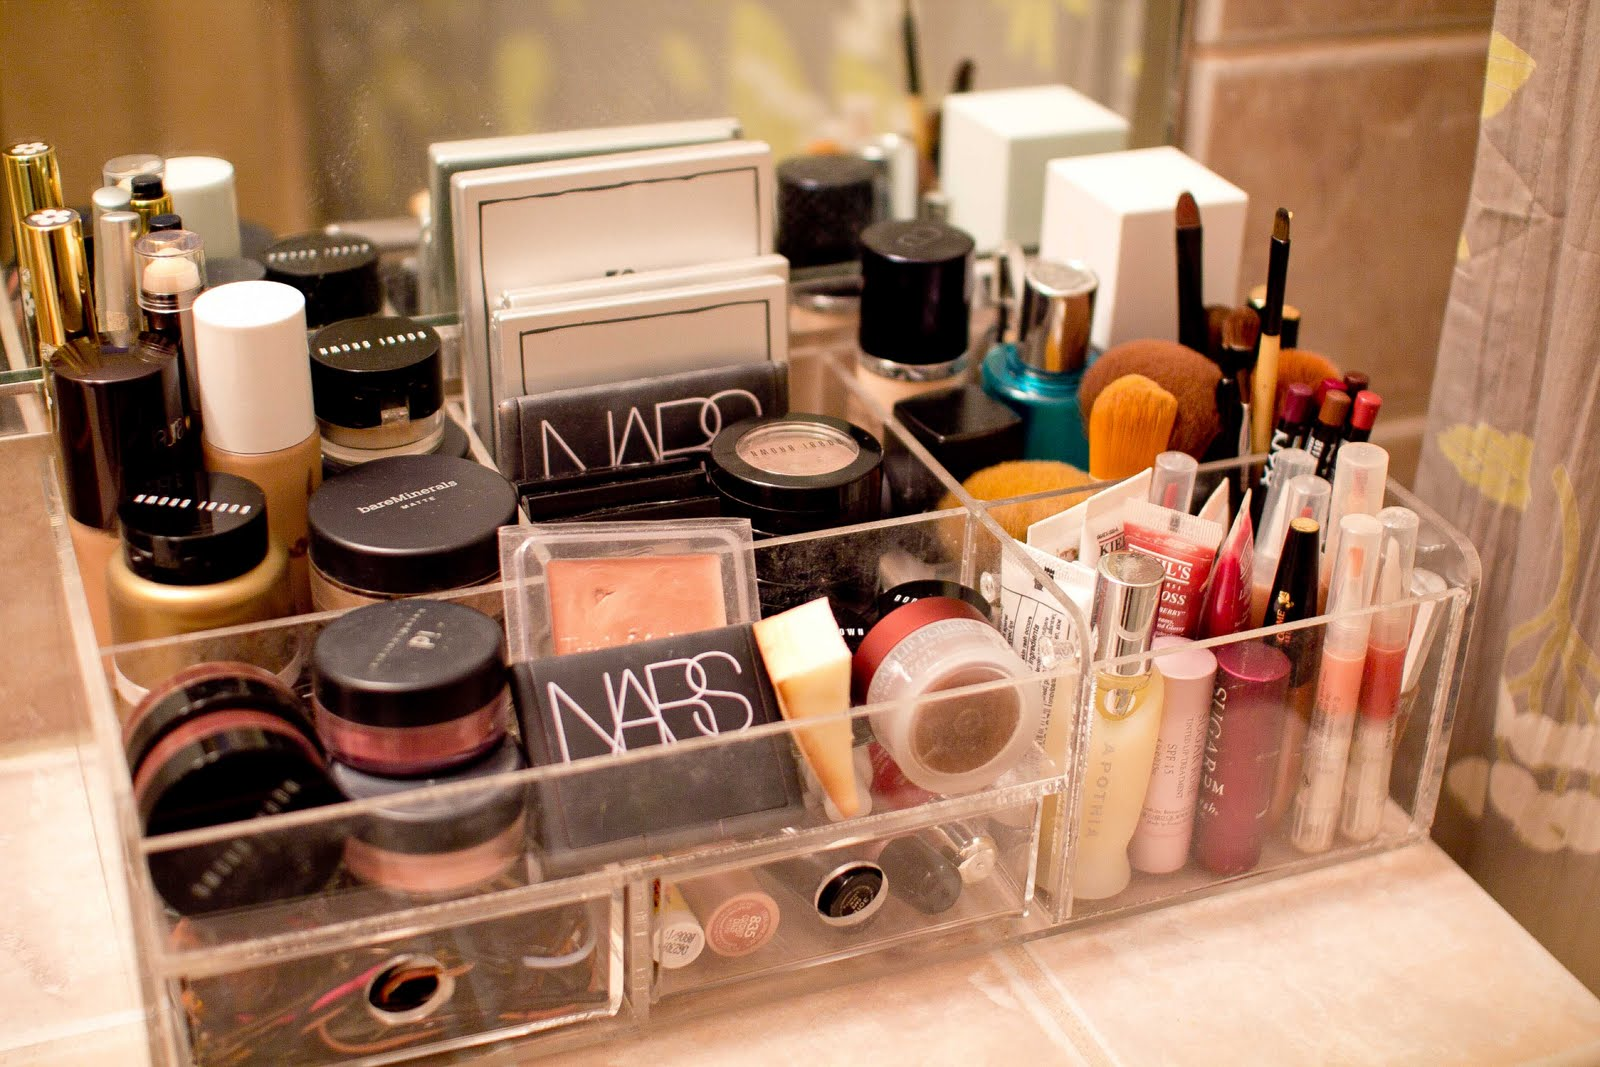 23 tremendous makeup organizer ideas slodive Makeup organizer ideas